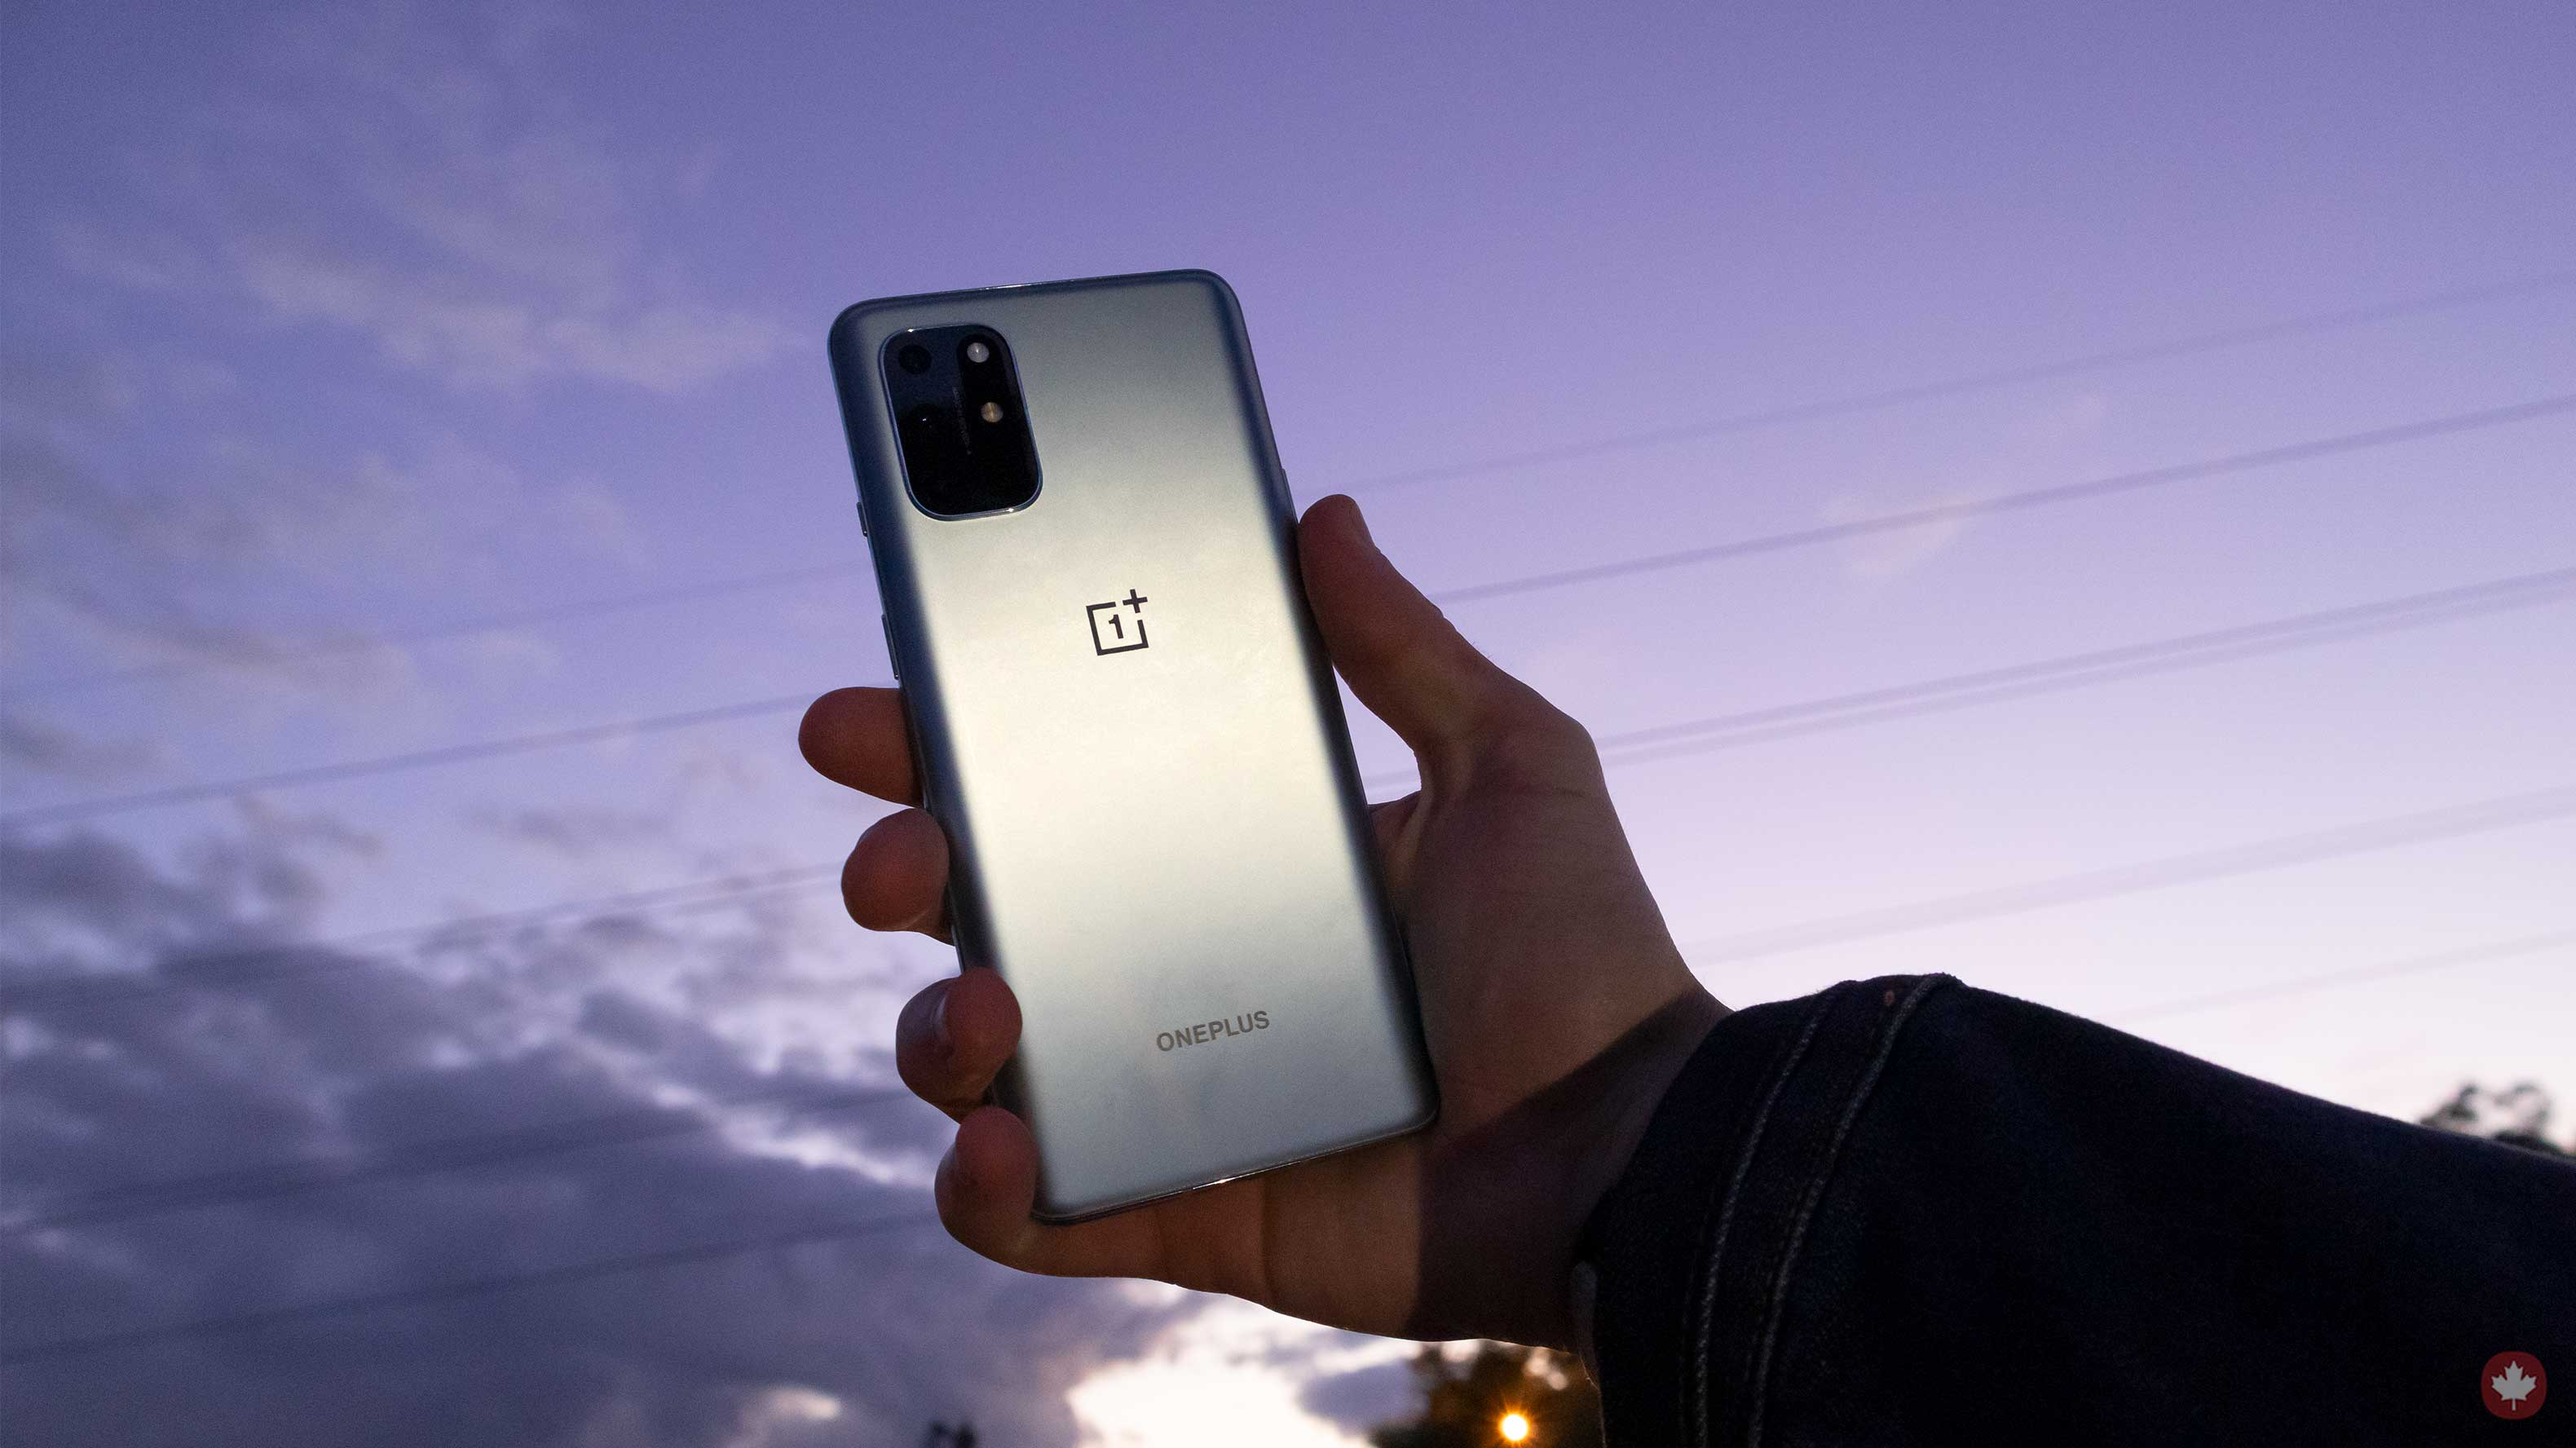 OnePlus 8T is now available in Canada